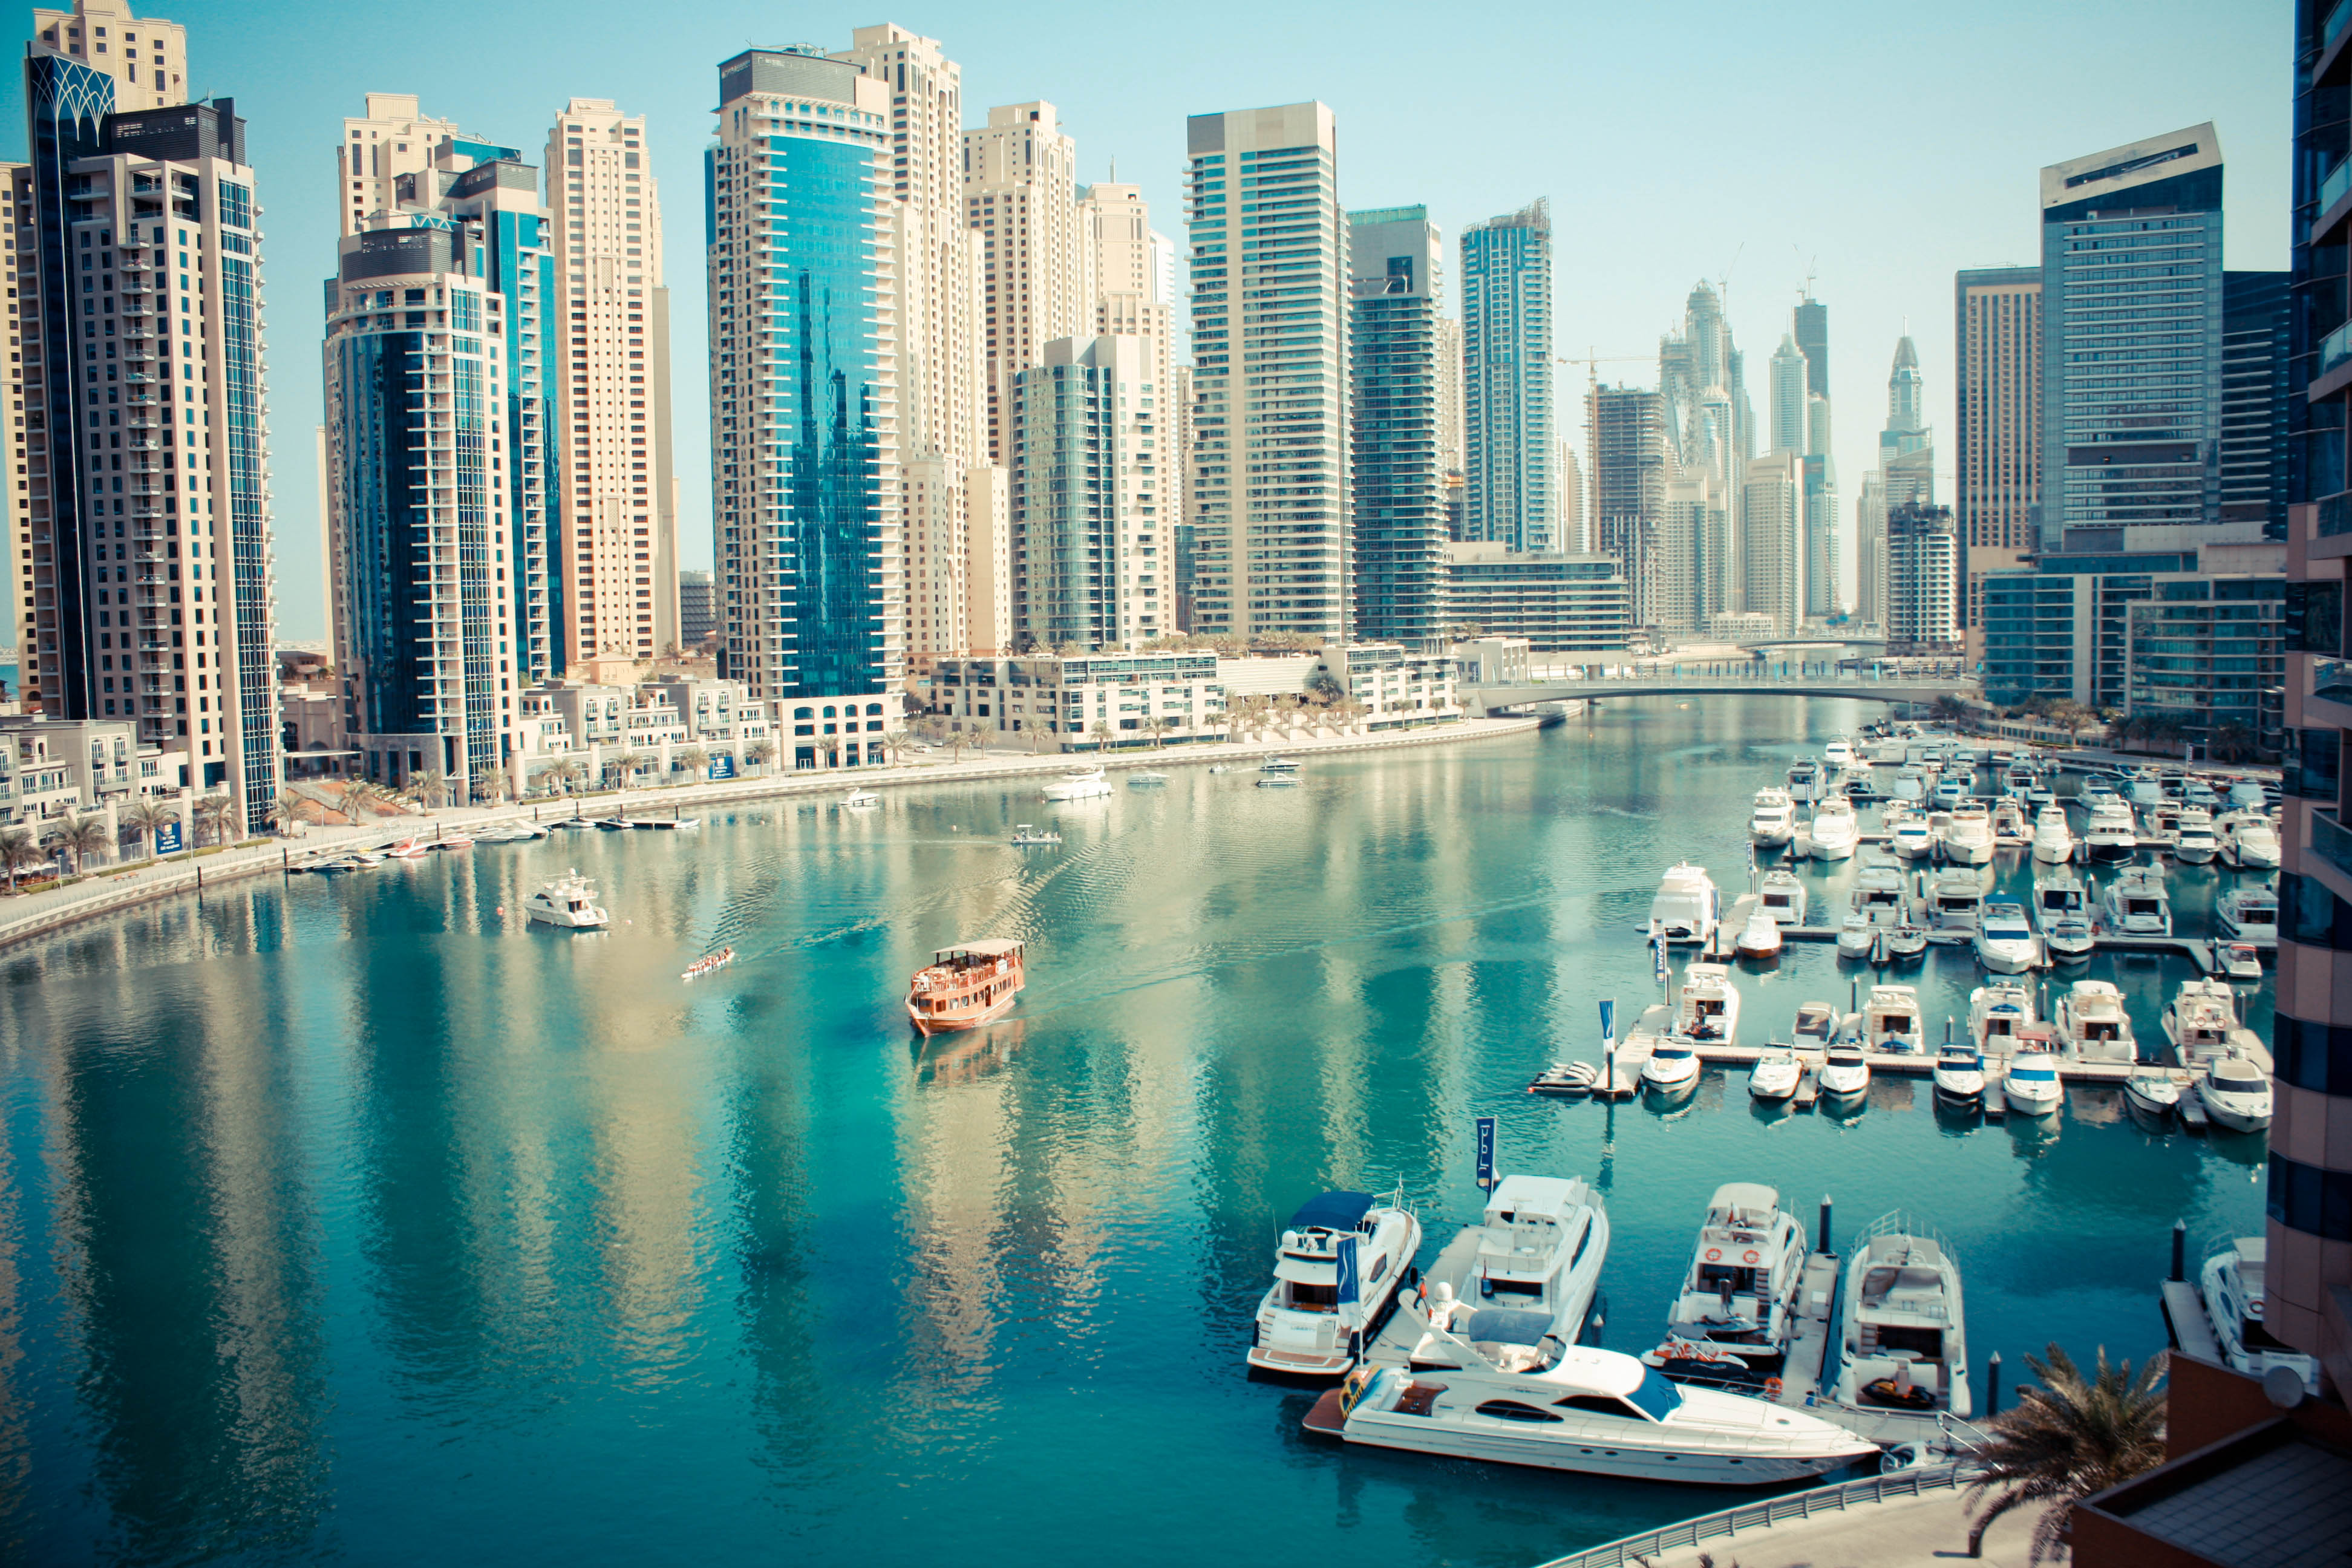 Real estate in Dubai, United Arab Emirates - Marina.jpg